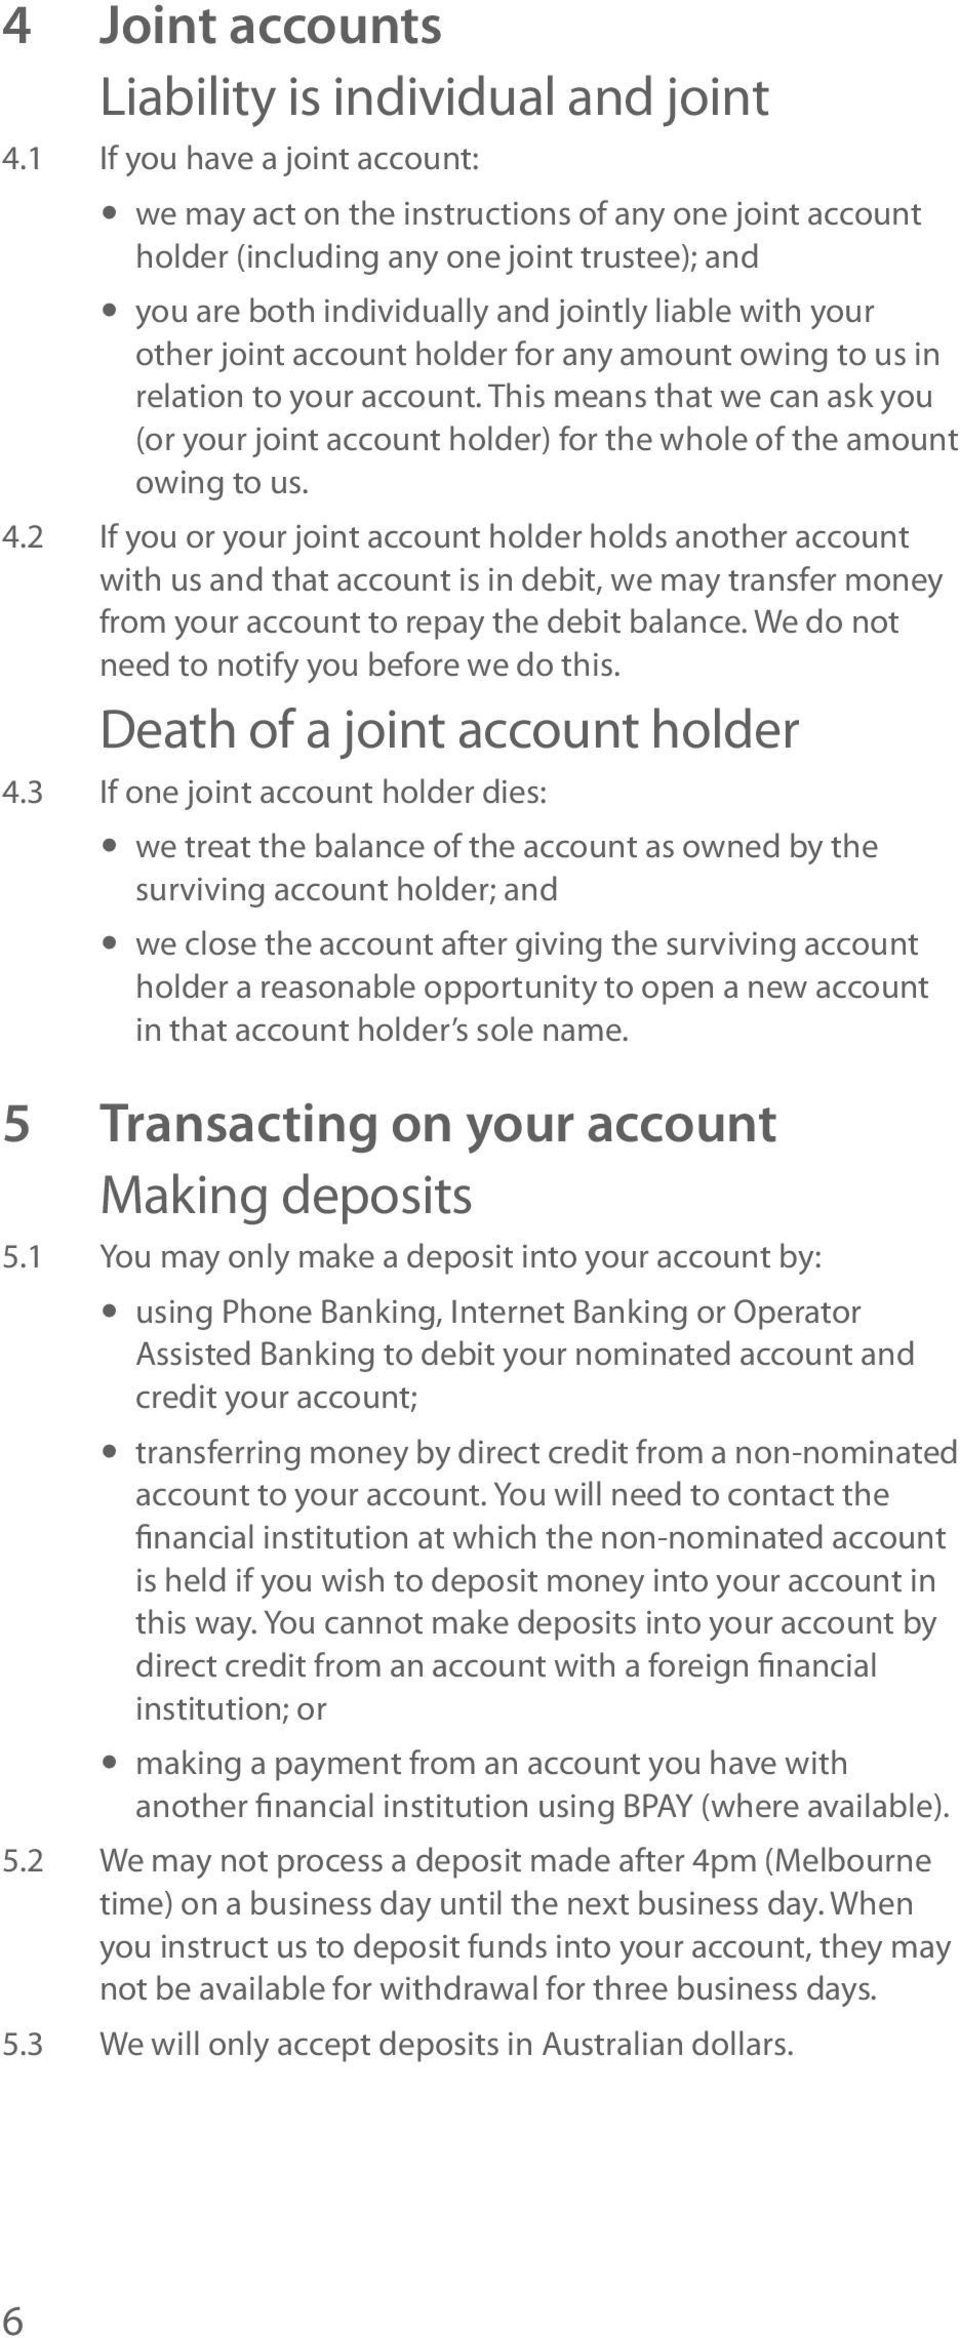 joint account holder for any amount owing to us in relation to your account. This means that we can ask you (or your joint account holder) for the whole of the amount owing to us. 4.